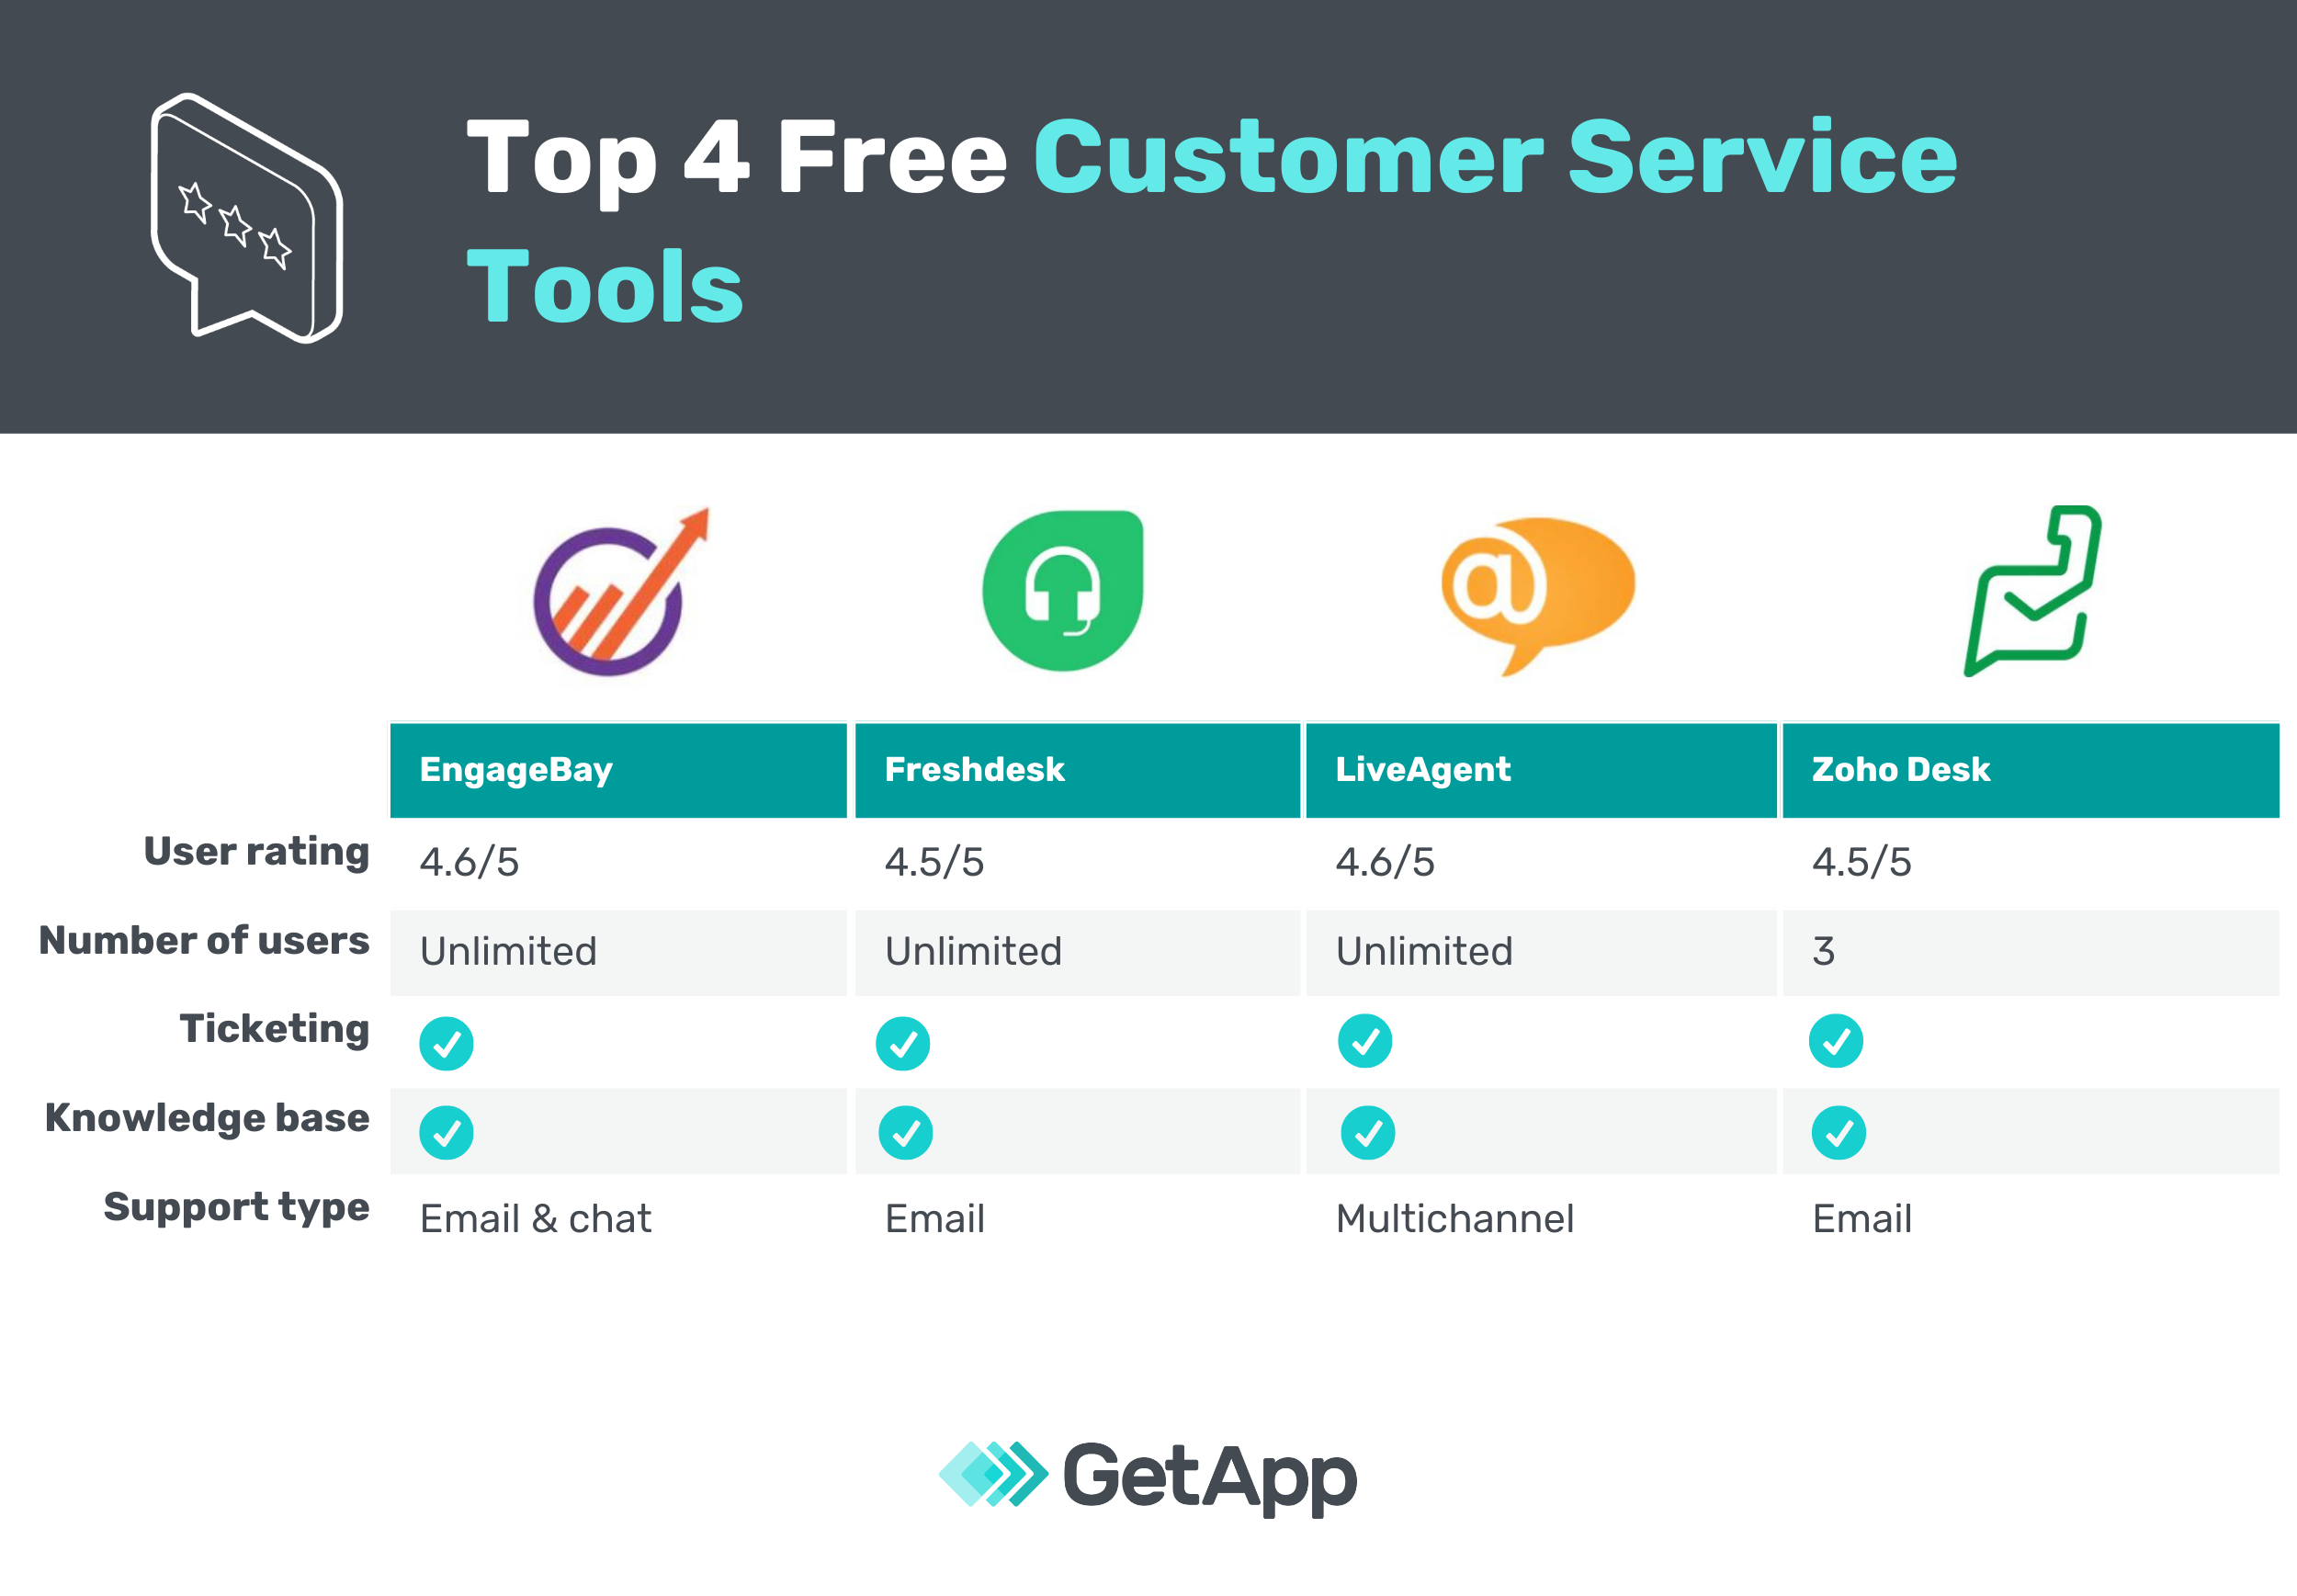 Top 4 Free Customer Service Tools